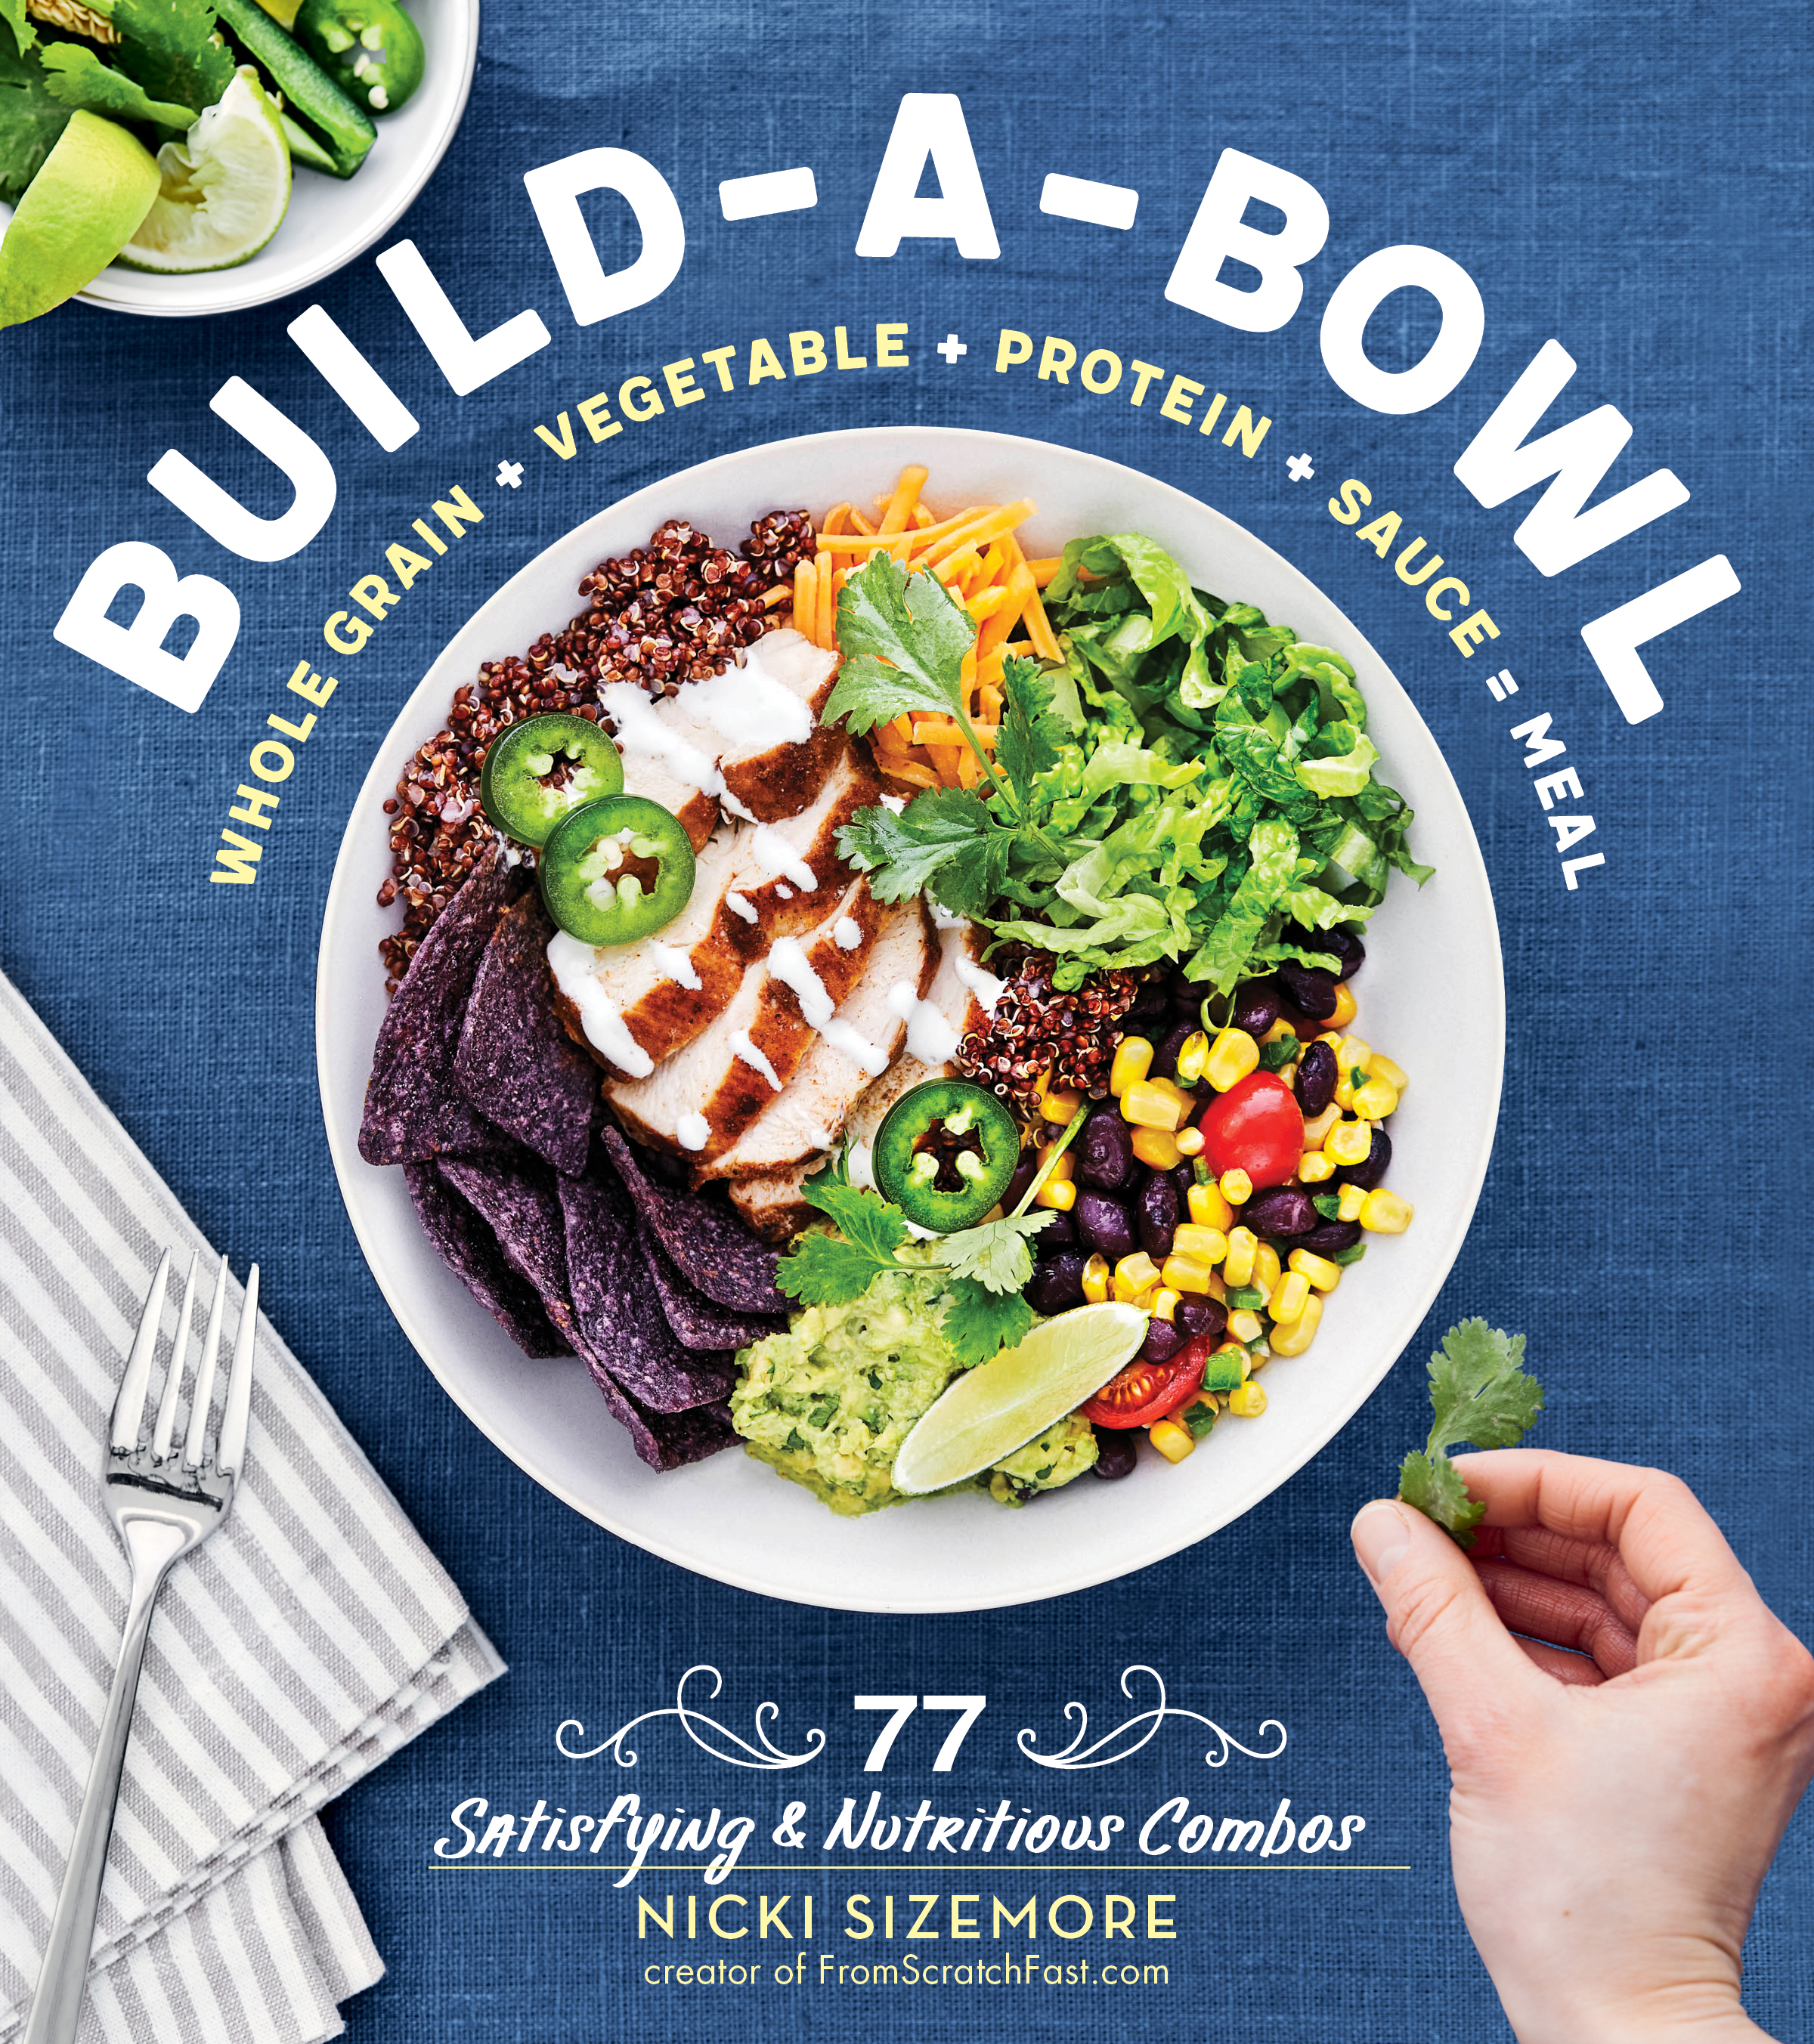 Build-a-Bowl 77 Satisfying & Nutritious Combos: Whole Grain + Vegetable + Protein + Sauce = Meal - Nicki Sizemore